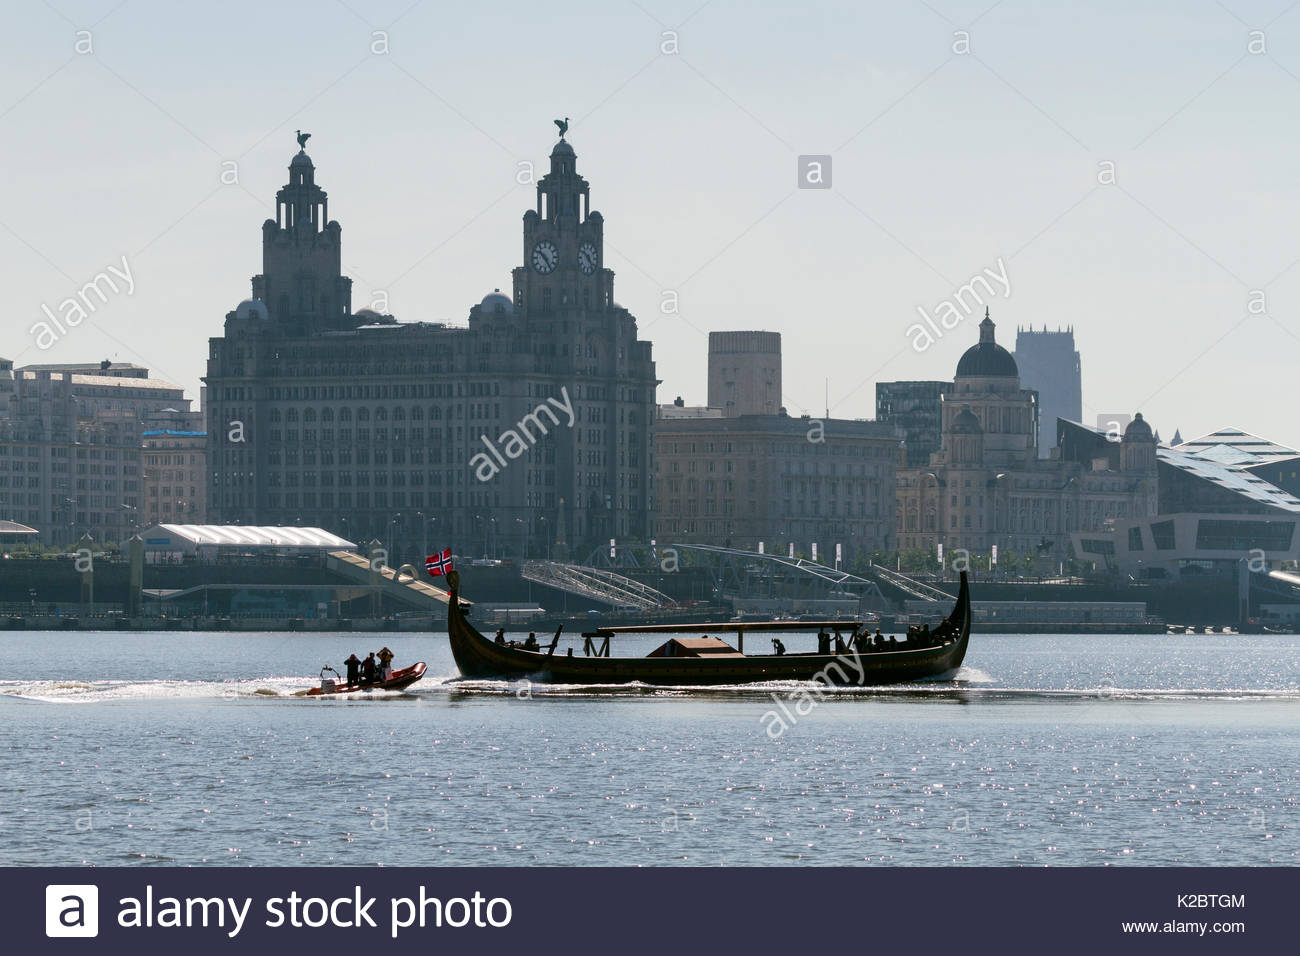 Draken Harald Harfagre (Dragon Harald Fairhair), passing by the Three Graces, Royal Liver buildings, Cunard and Port of Liverpool buildings. This is the largest Viking ship built in modern times, arriving to have her mast repaired. River Mersey, Merseyside, United Kingdom, July 2014. All non-editorial uses must be cleared individually. - Stock Image